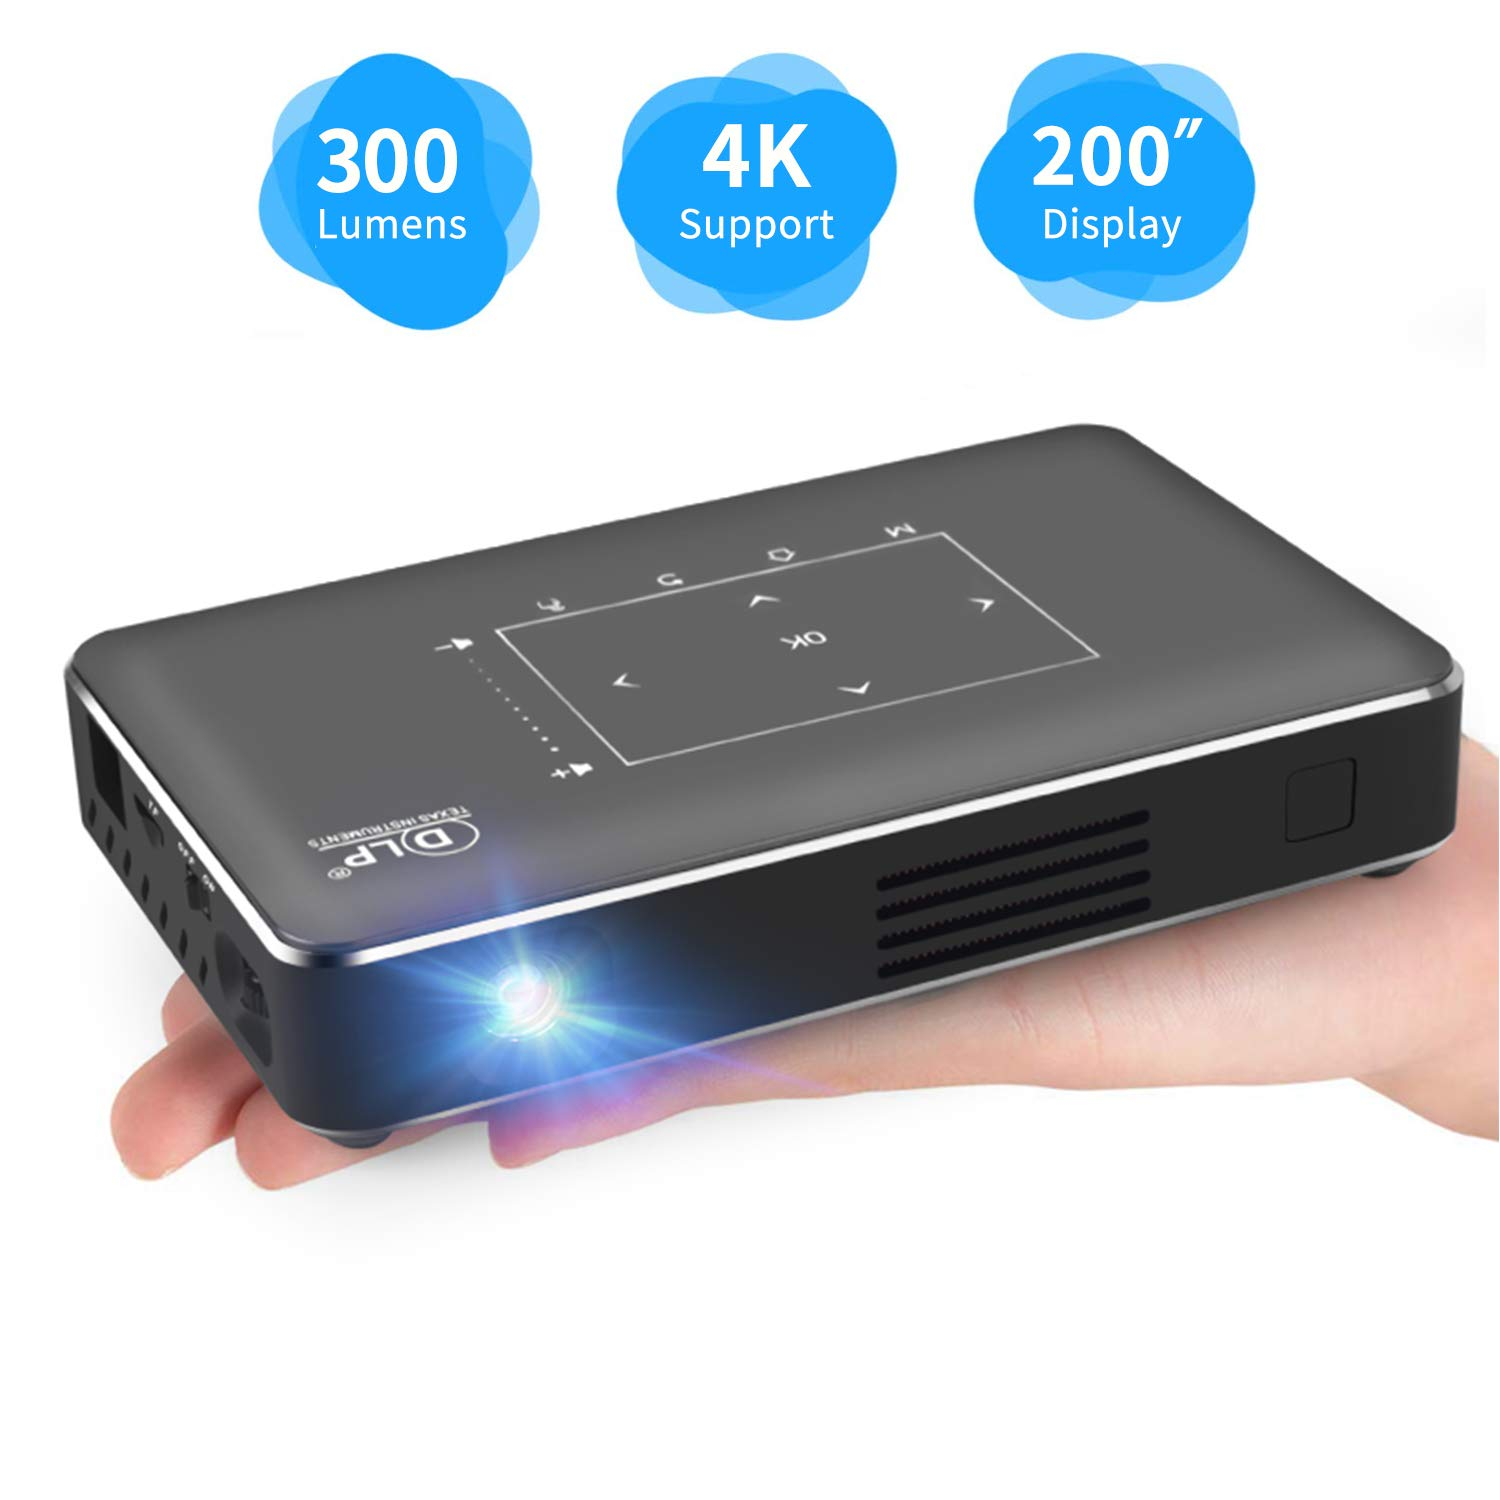 Haidiscool Pico Portable Projector, Mini Pocket Video Smart Phone DLP Android Projector 300 ANSI Lumen with Bluetooth/USB/HDMI/2GB RAM, Support 1080P 4K Movie, for Outdoor/Home Cinema